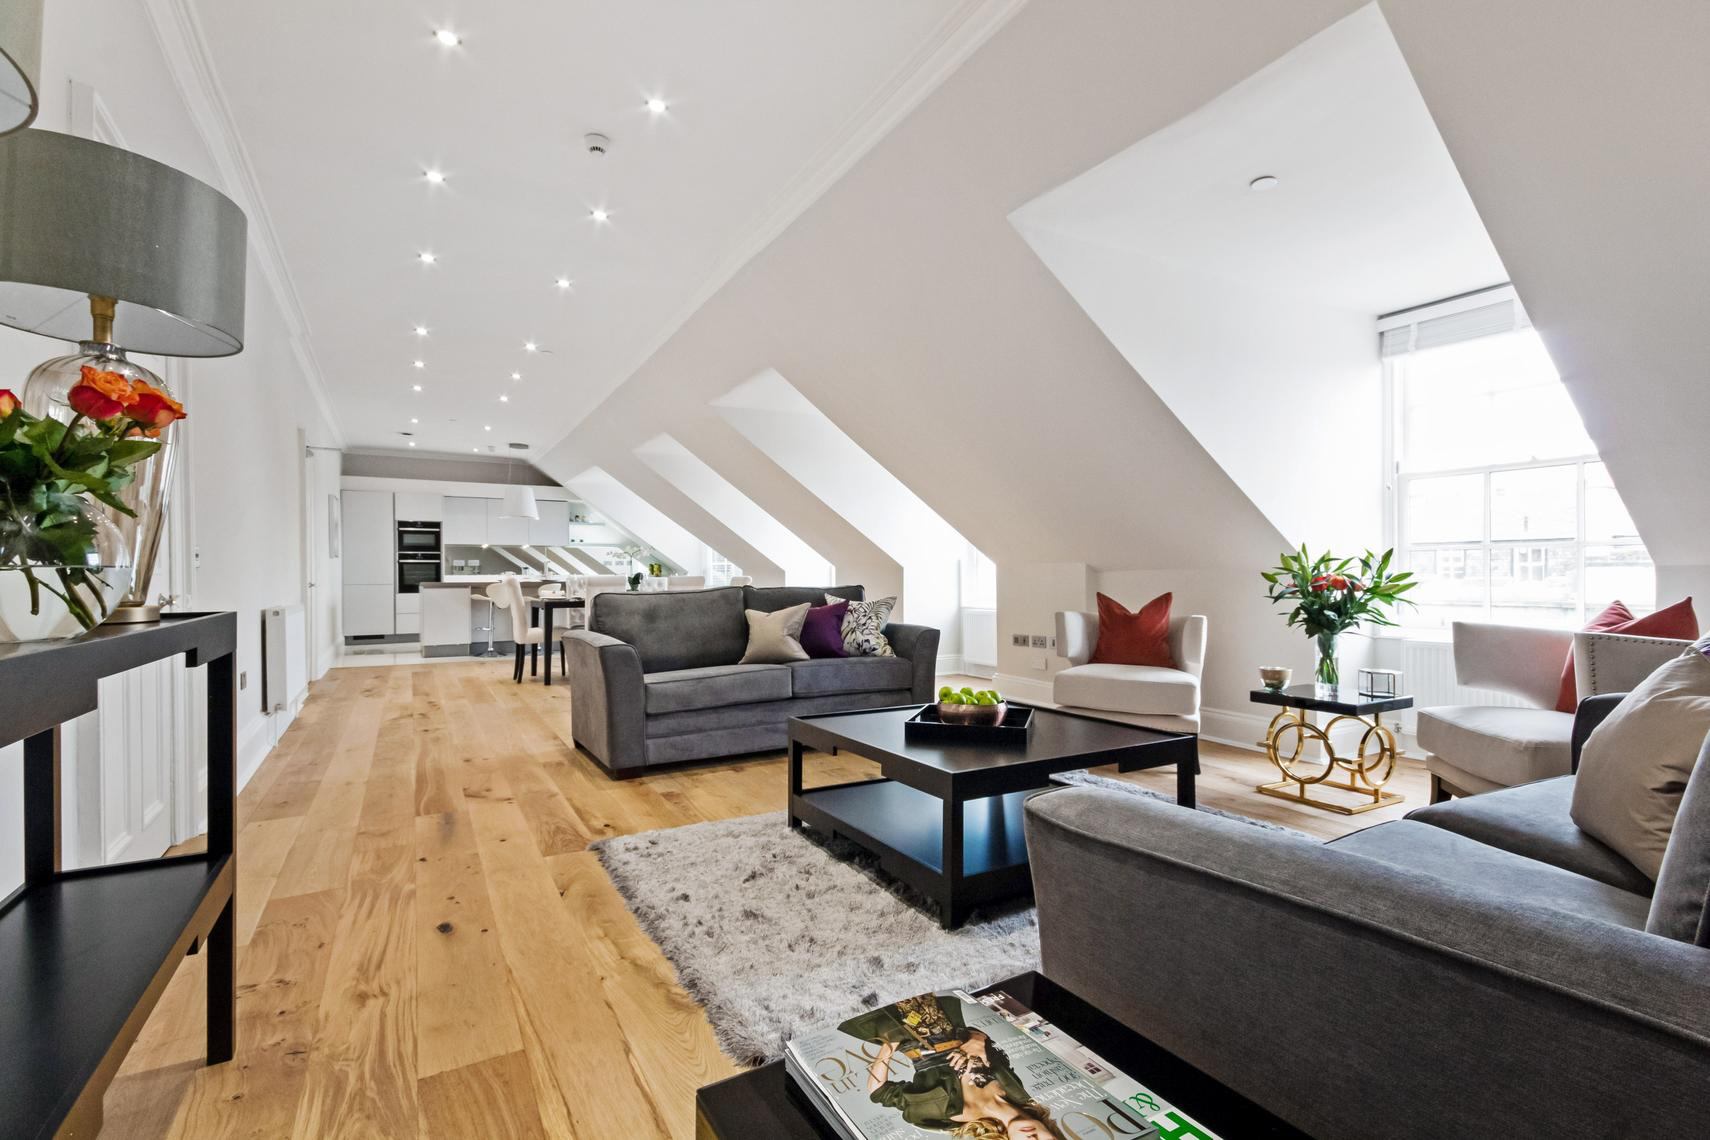 PR photography for Grant Property in Edinburgh, Scotland